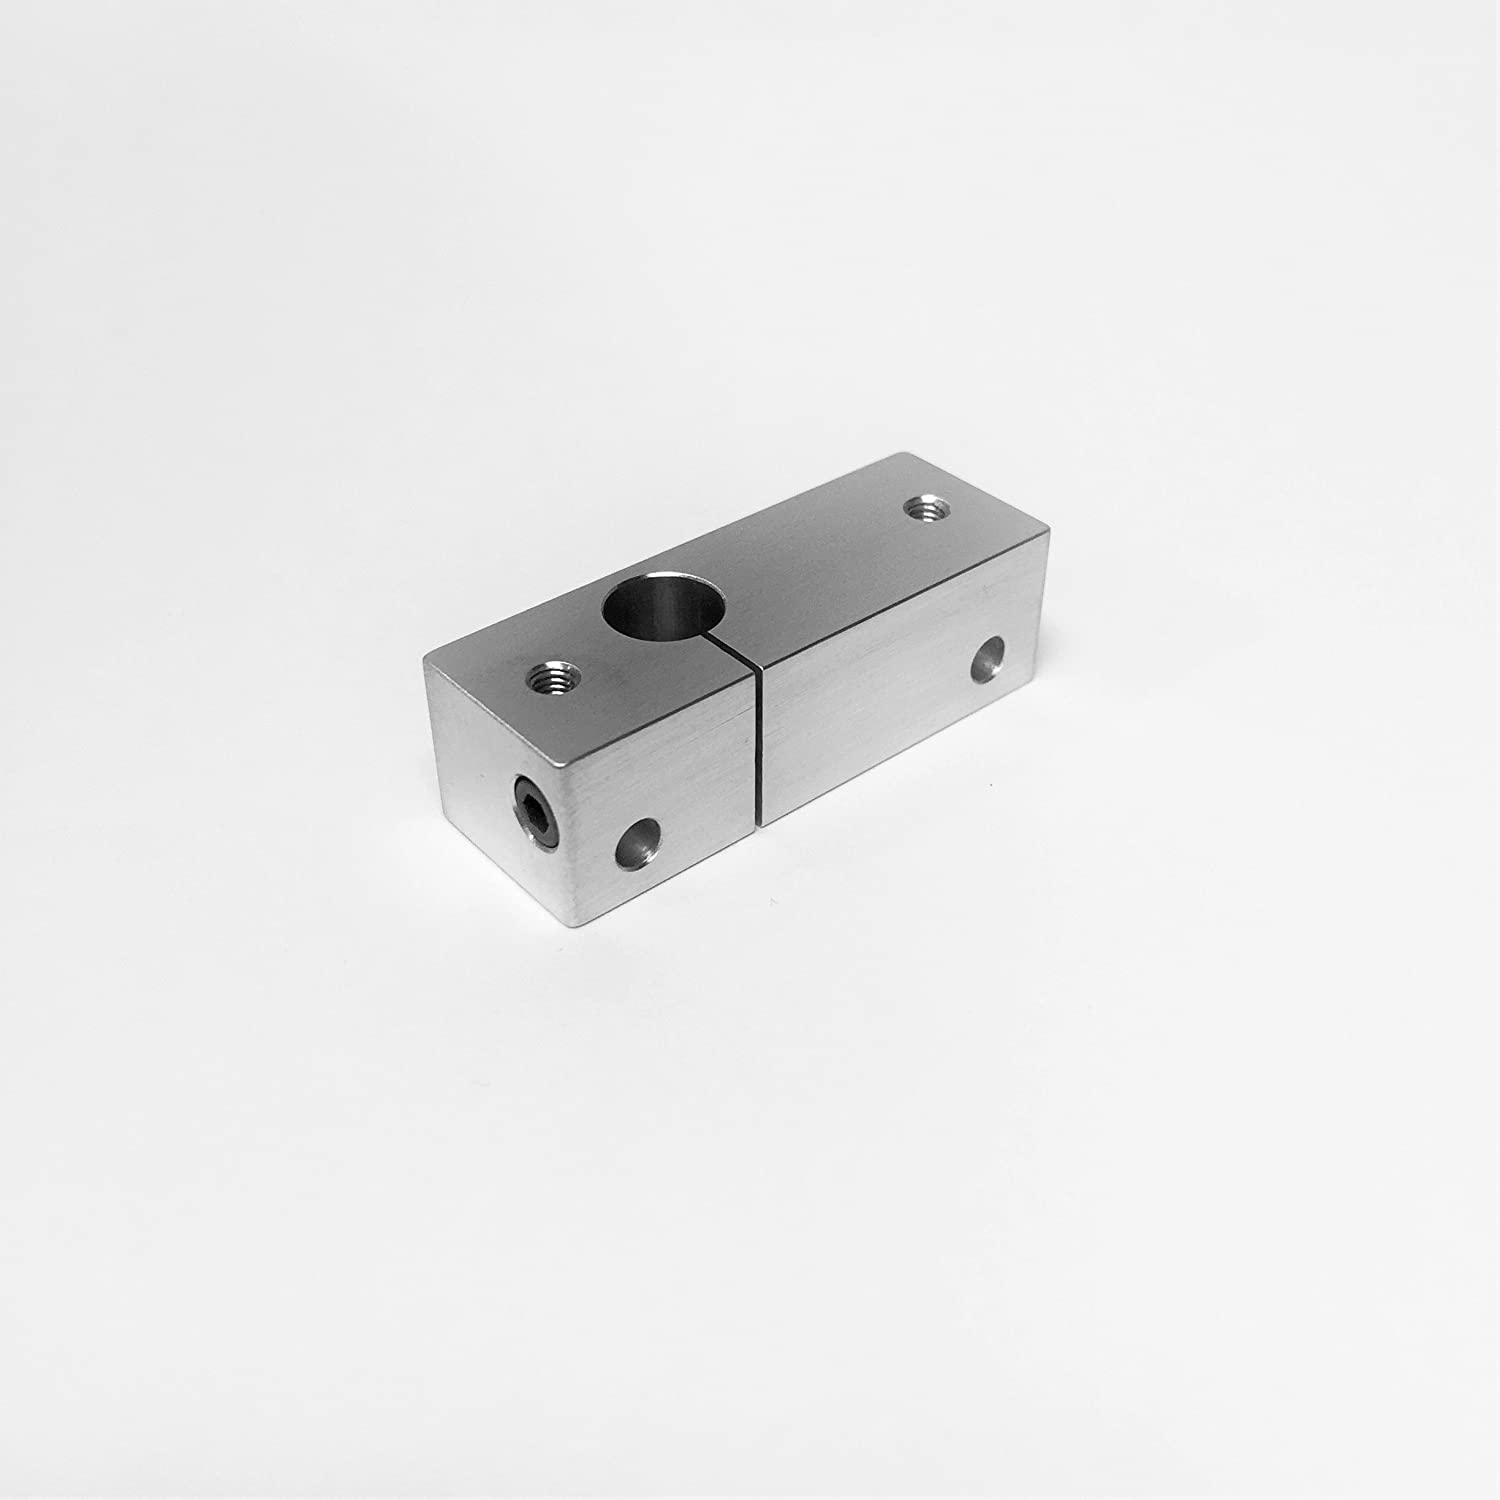 Micro Swiss CNC machined extruder plate for Wanhao 3 series